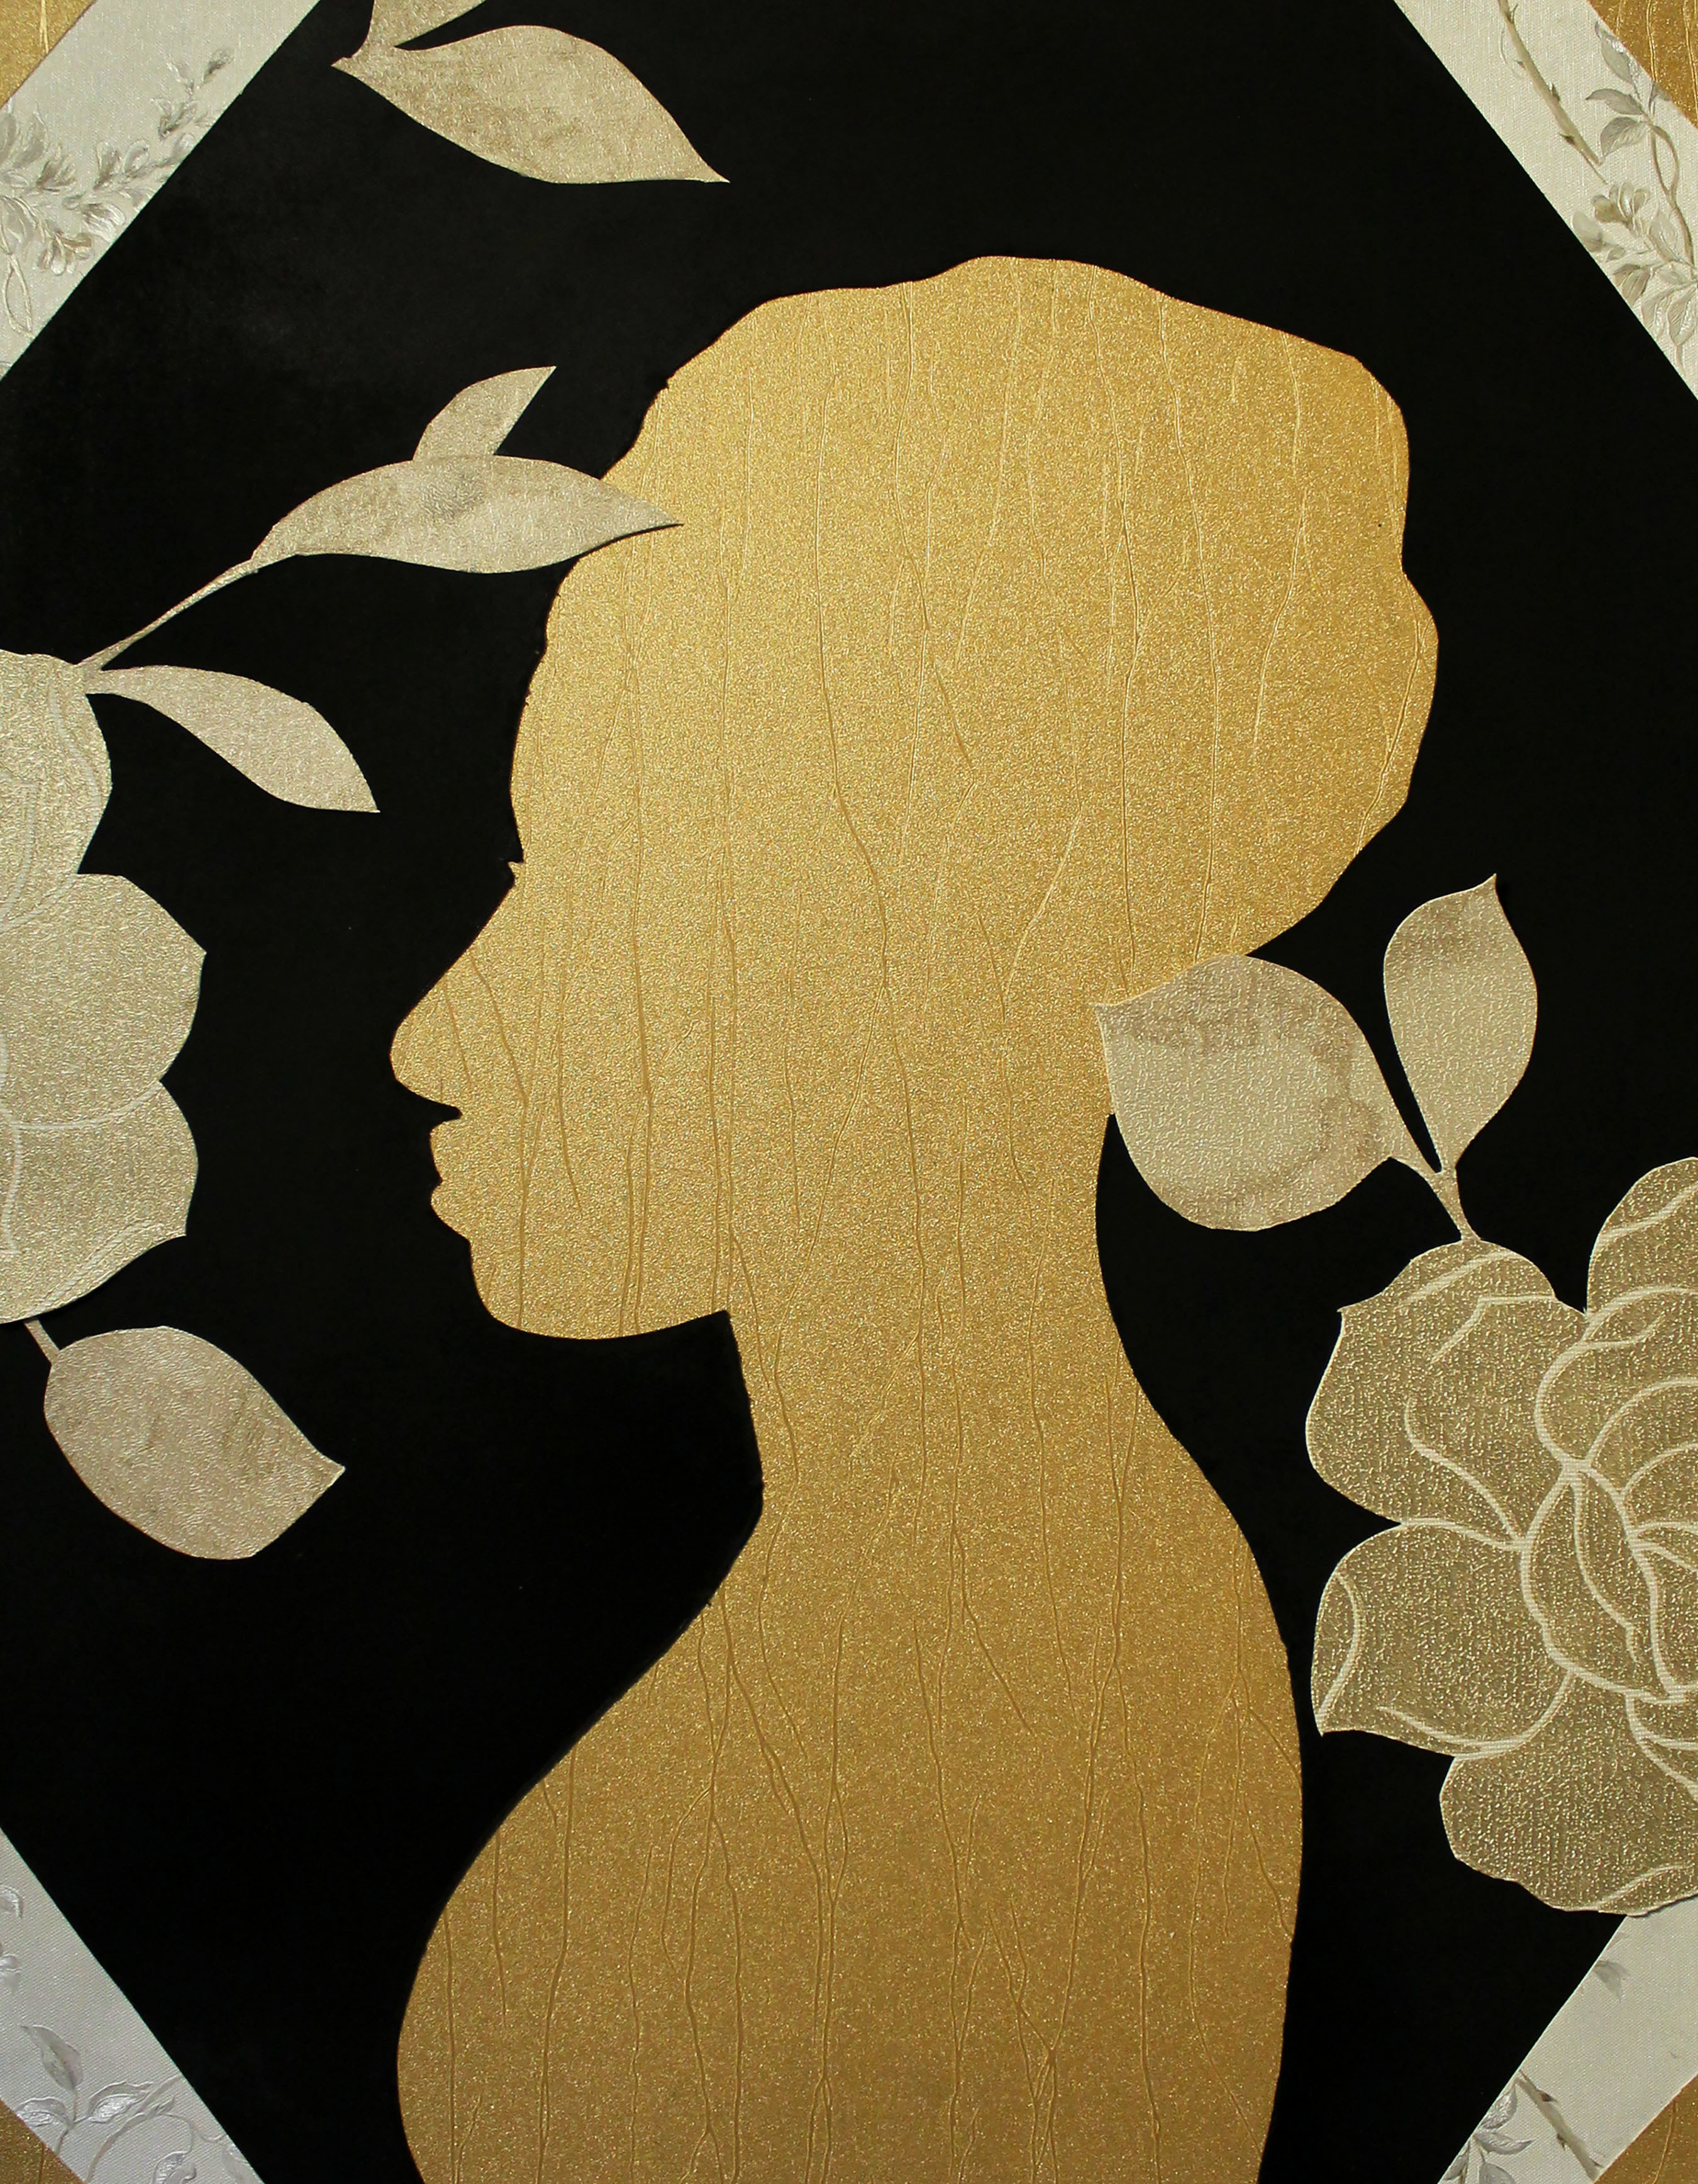 A gold silhouette of a woman surrounded by flowers